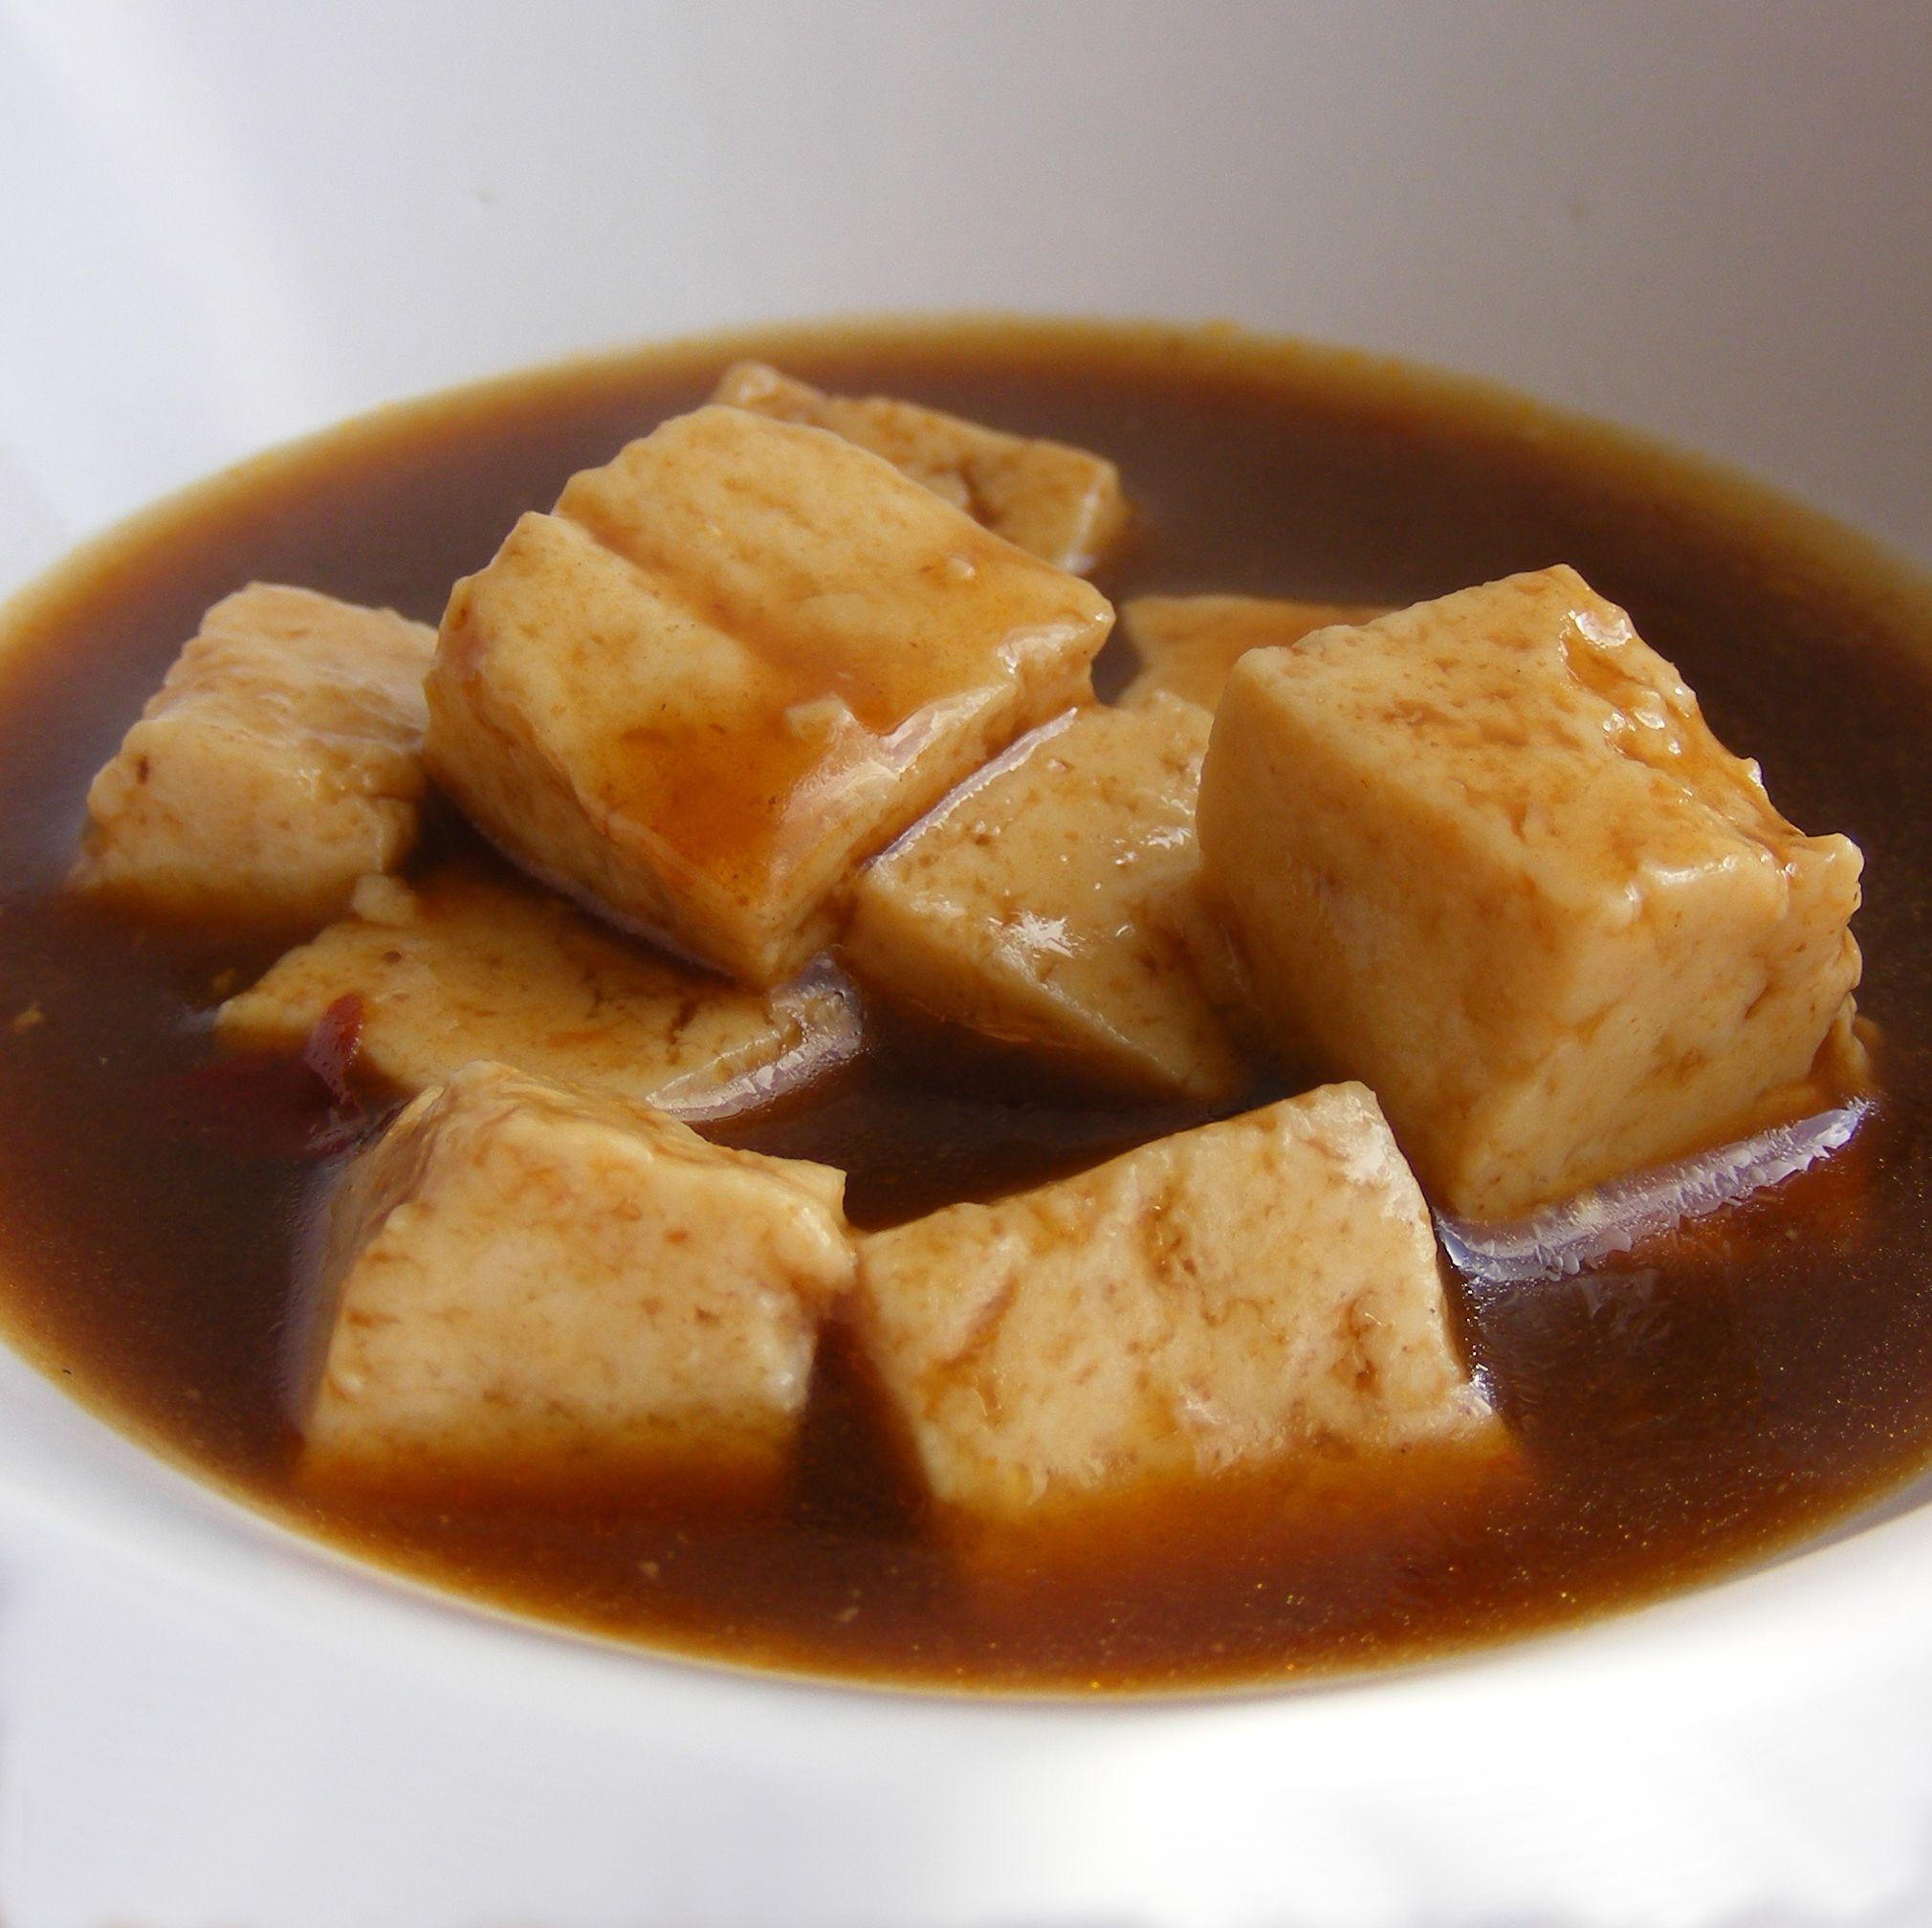 Vegan Tofu With Steak Sauce and ions Recipe